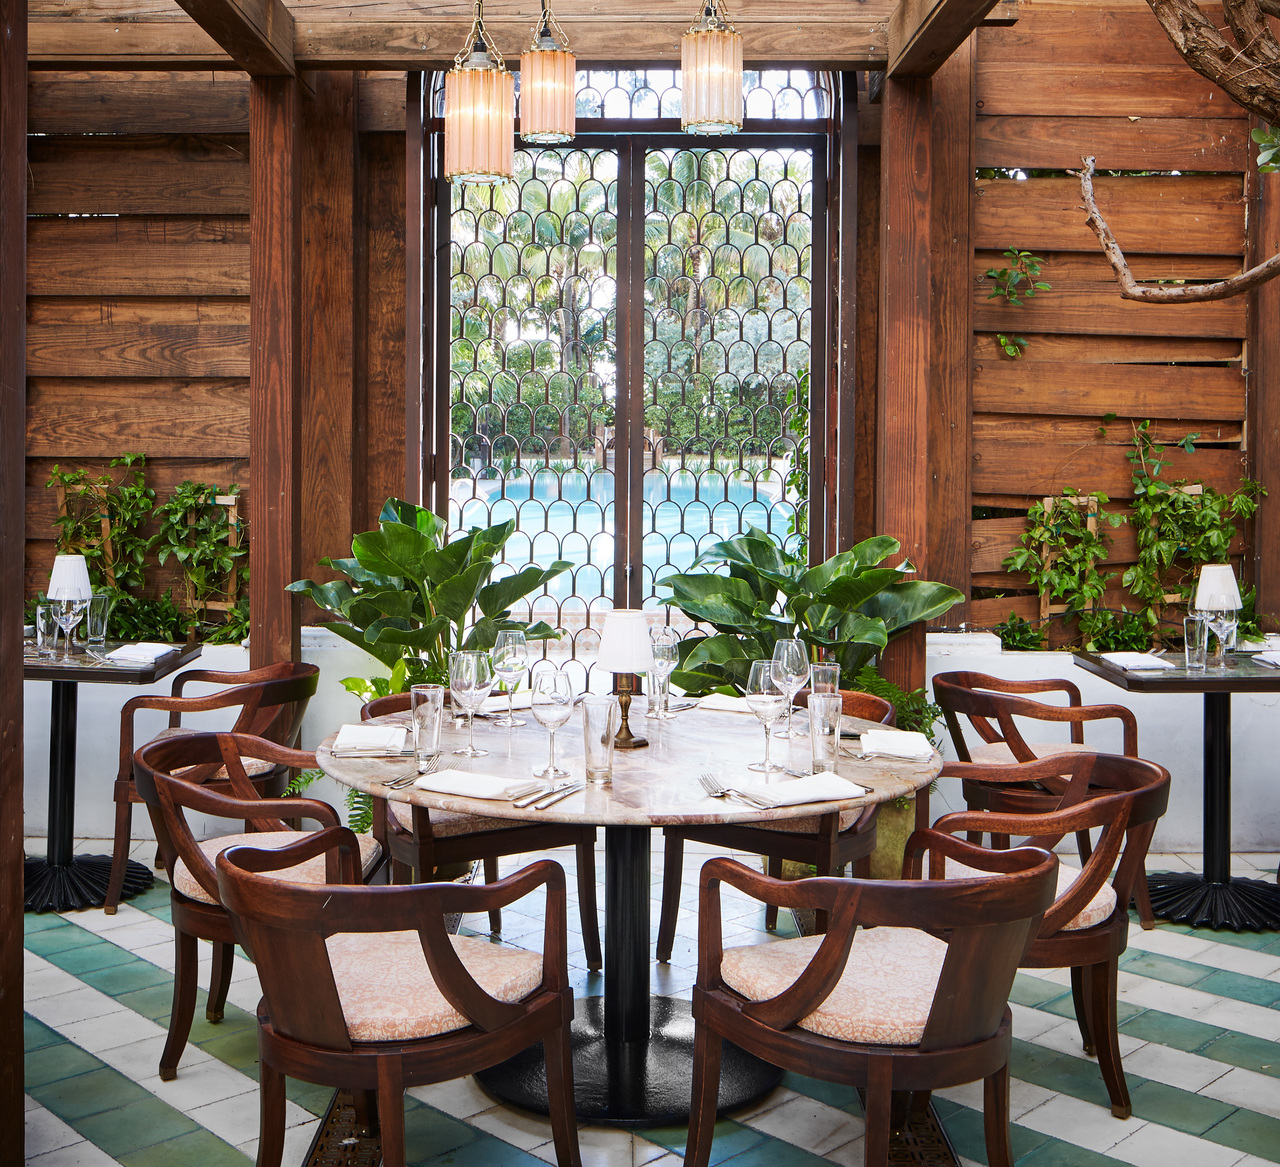 Wooden dining table, chairs and potted plants